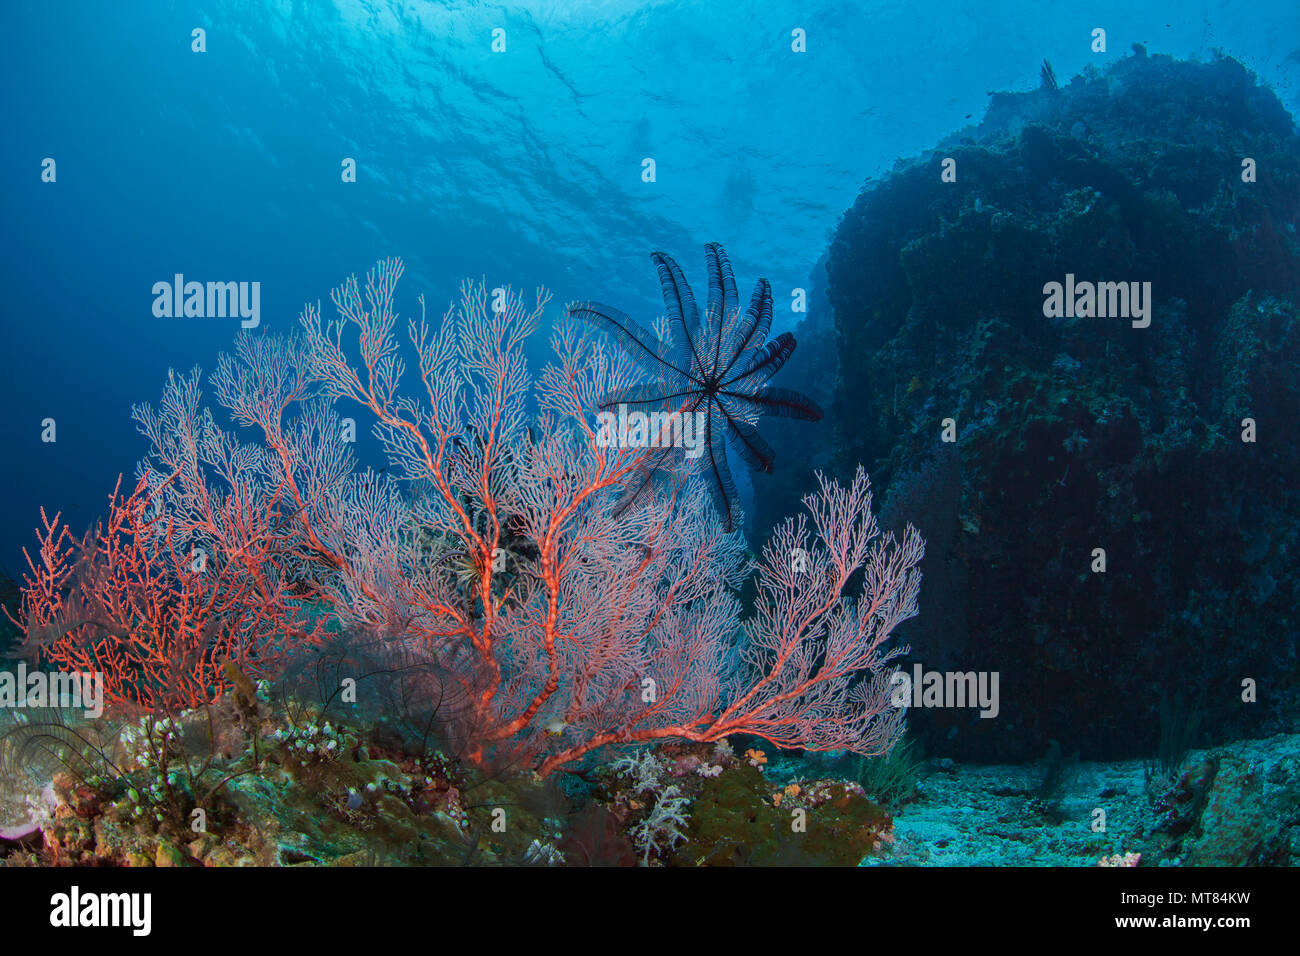 Seascape of featherstar on a bright pink seafan with coral covered bommie in blue water background. Southern Raja Ampat near Misool island, Indonesia. - Stock Image